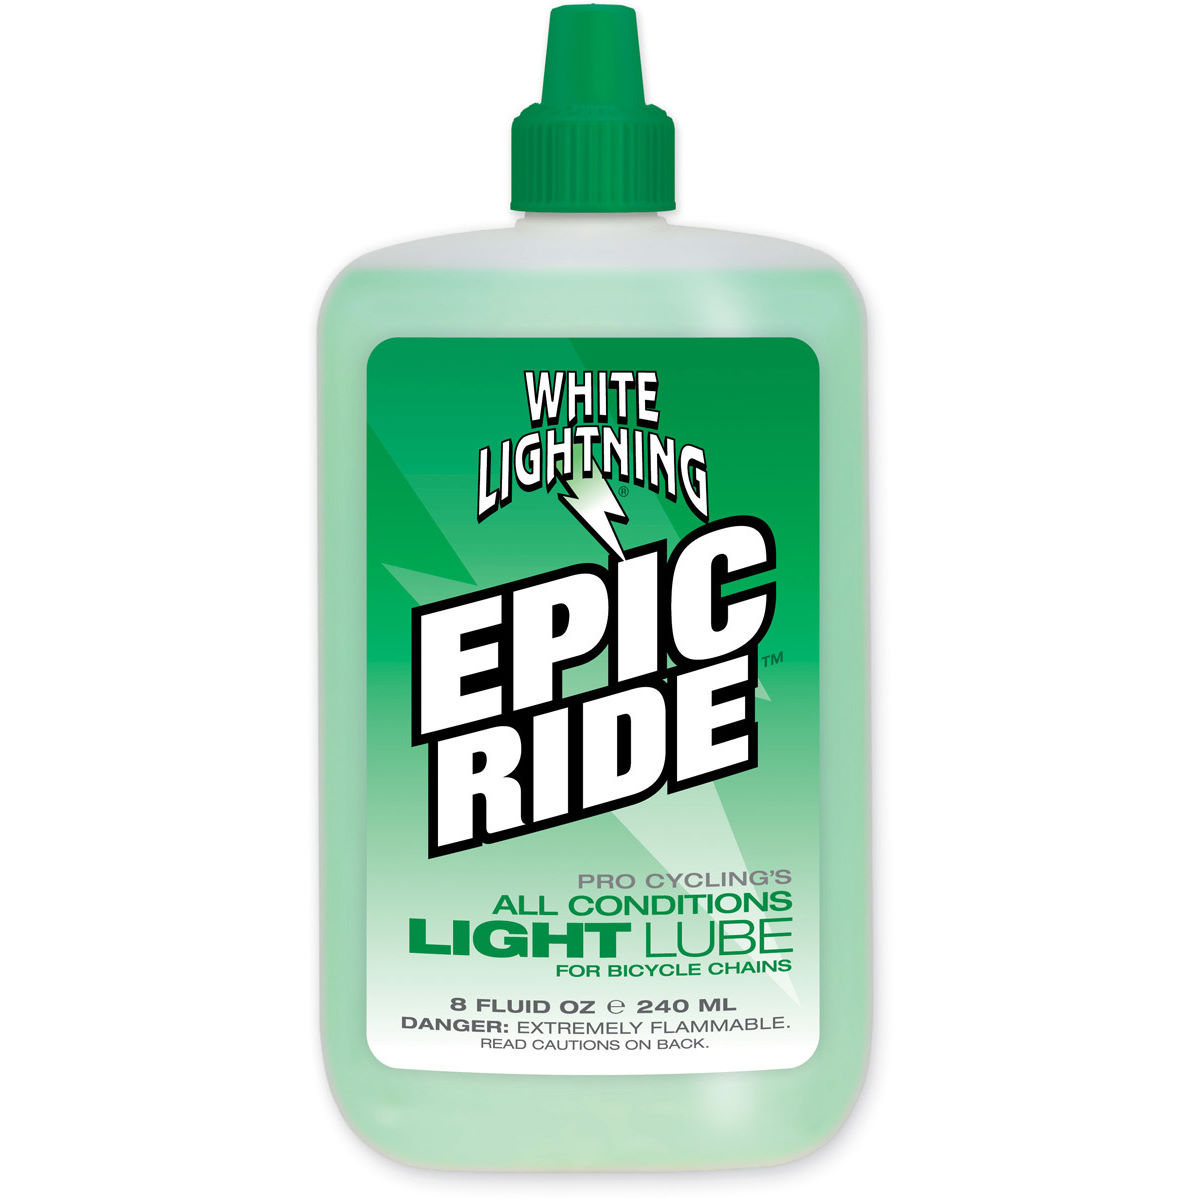 Lubrifiant White Lightning Epic Ride (240 ml) - 240ml Vert